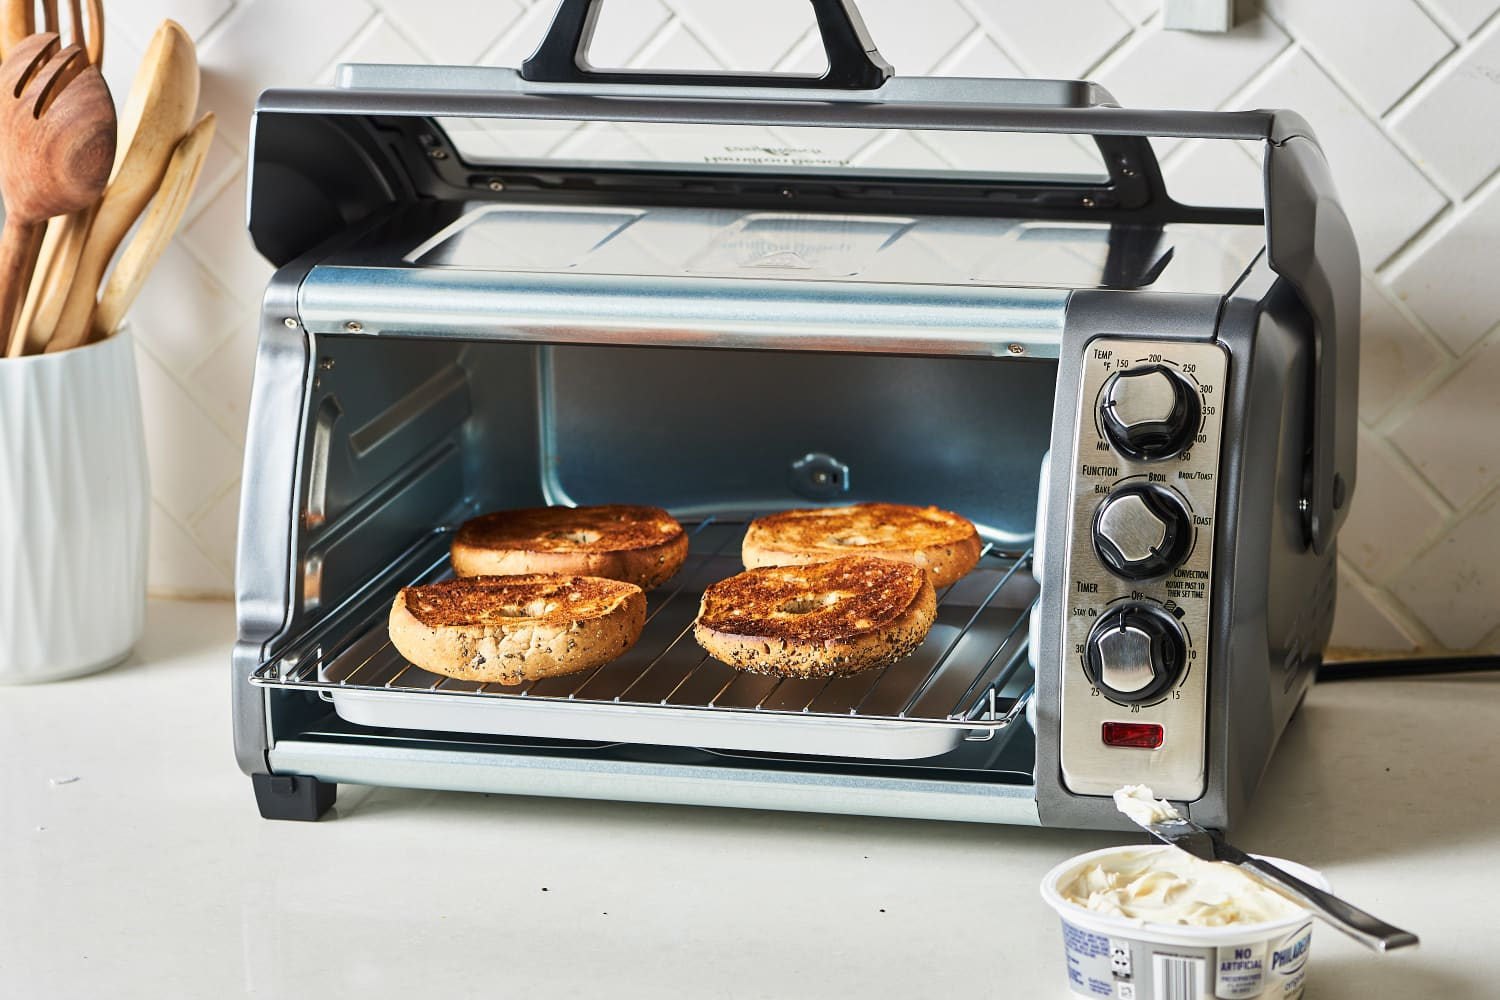 The 5 Very Best Toasters and Toaster Ovens on Sale for Amazon Prime Day (Including a Reader Favorite)